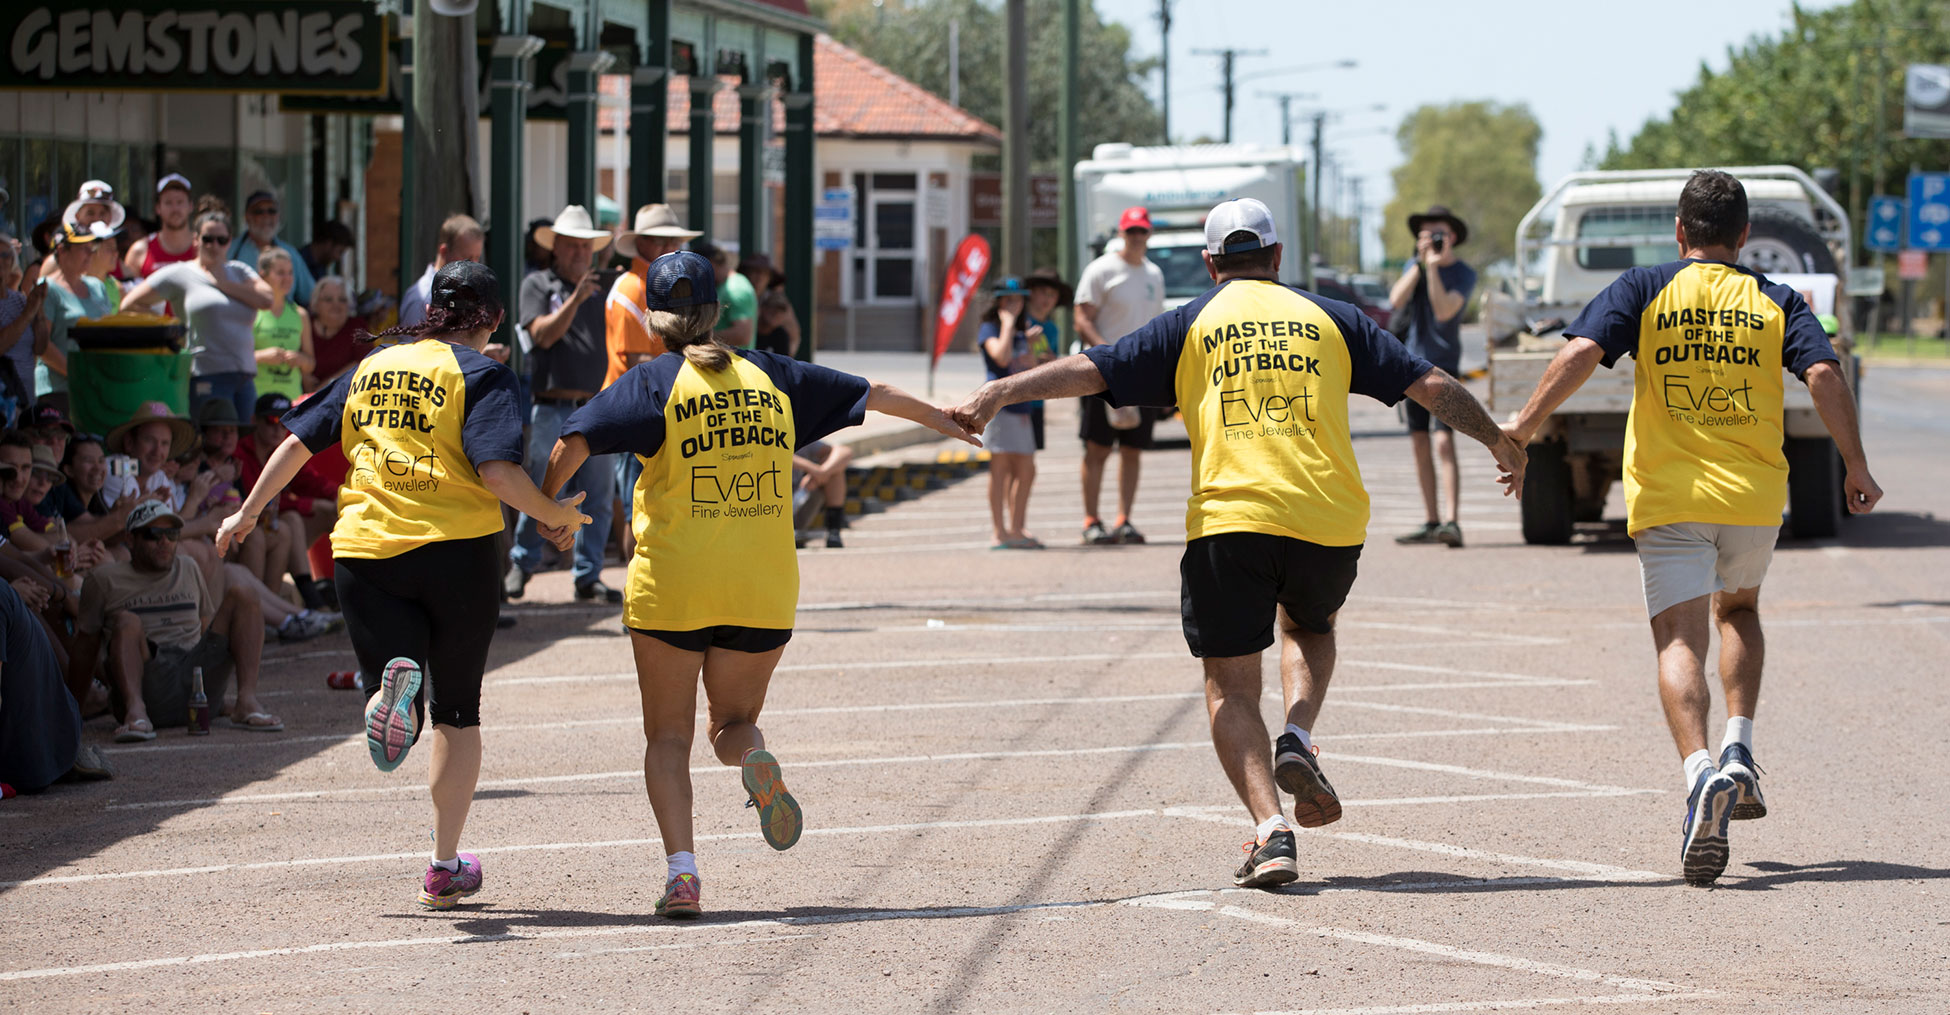 Masters of the Outback competition